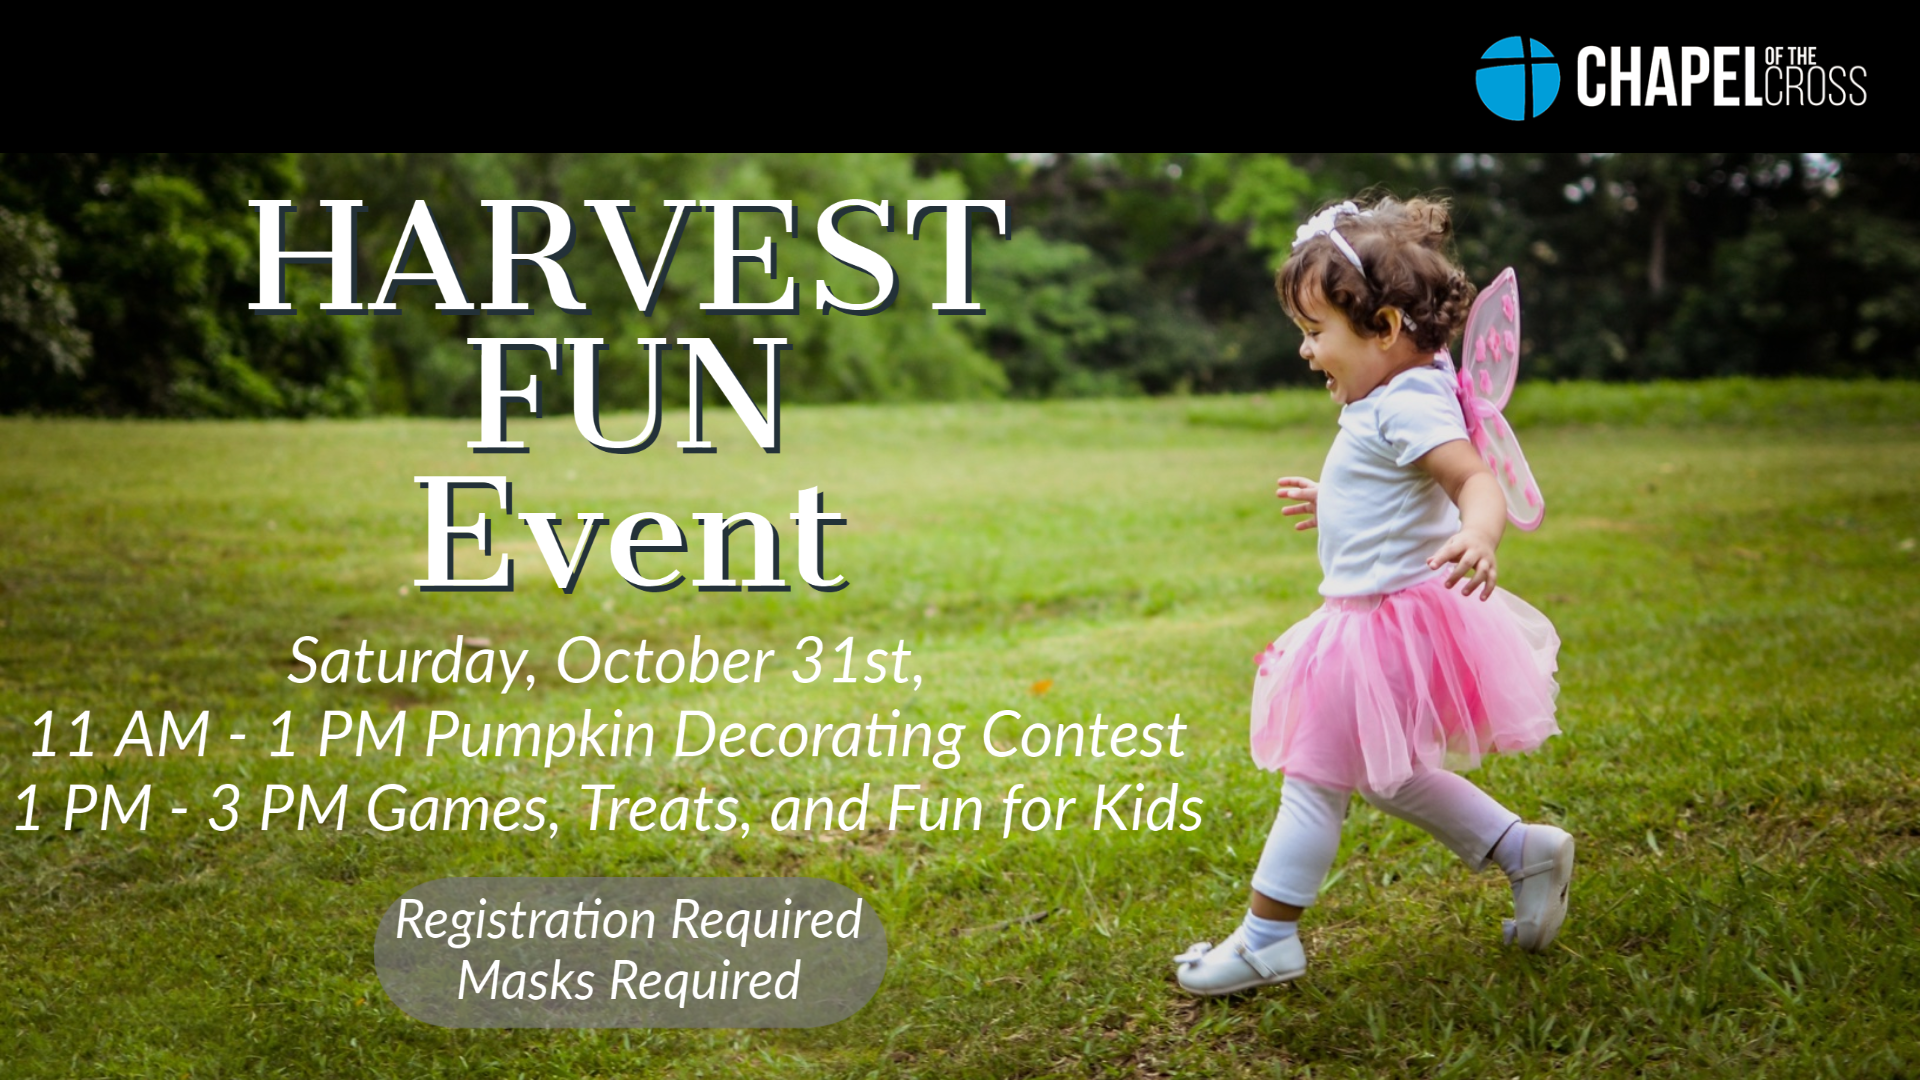 Harvest-Fun-Event-2020-10-31 image